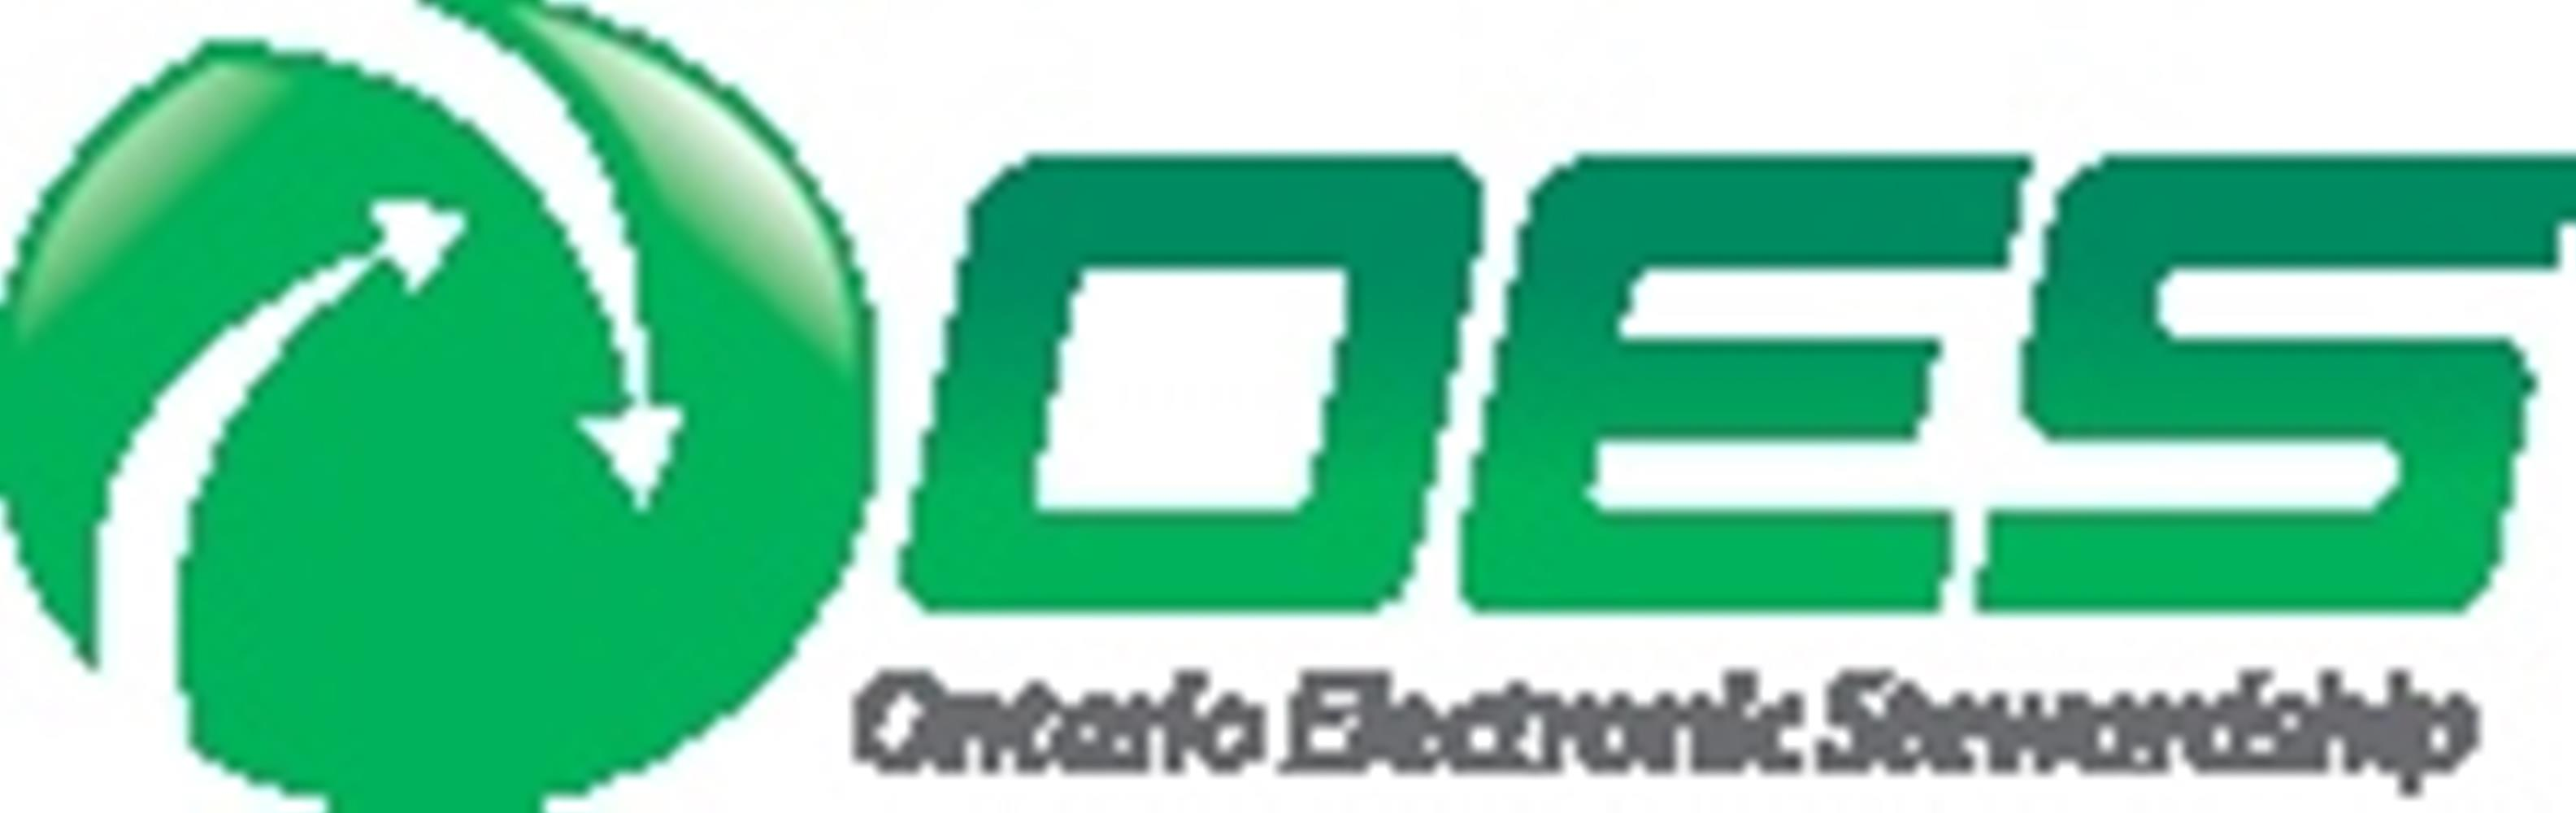 OES WASTE ELECTRONICS FEE (EEE) LAPTOP